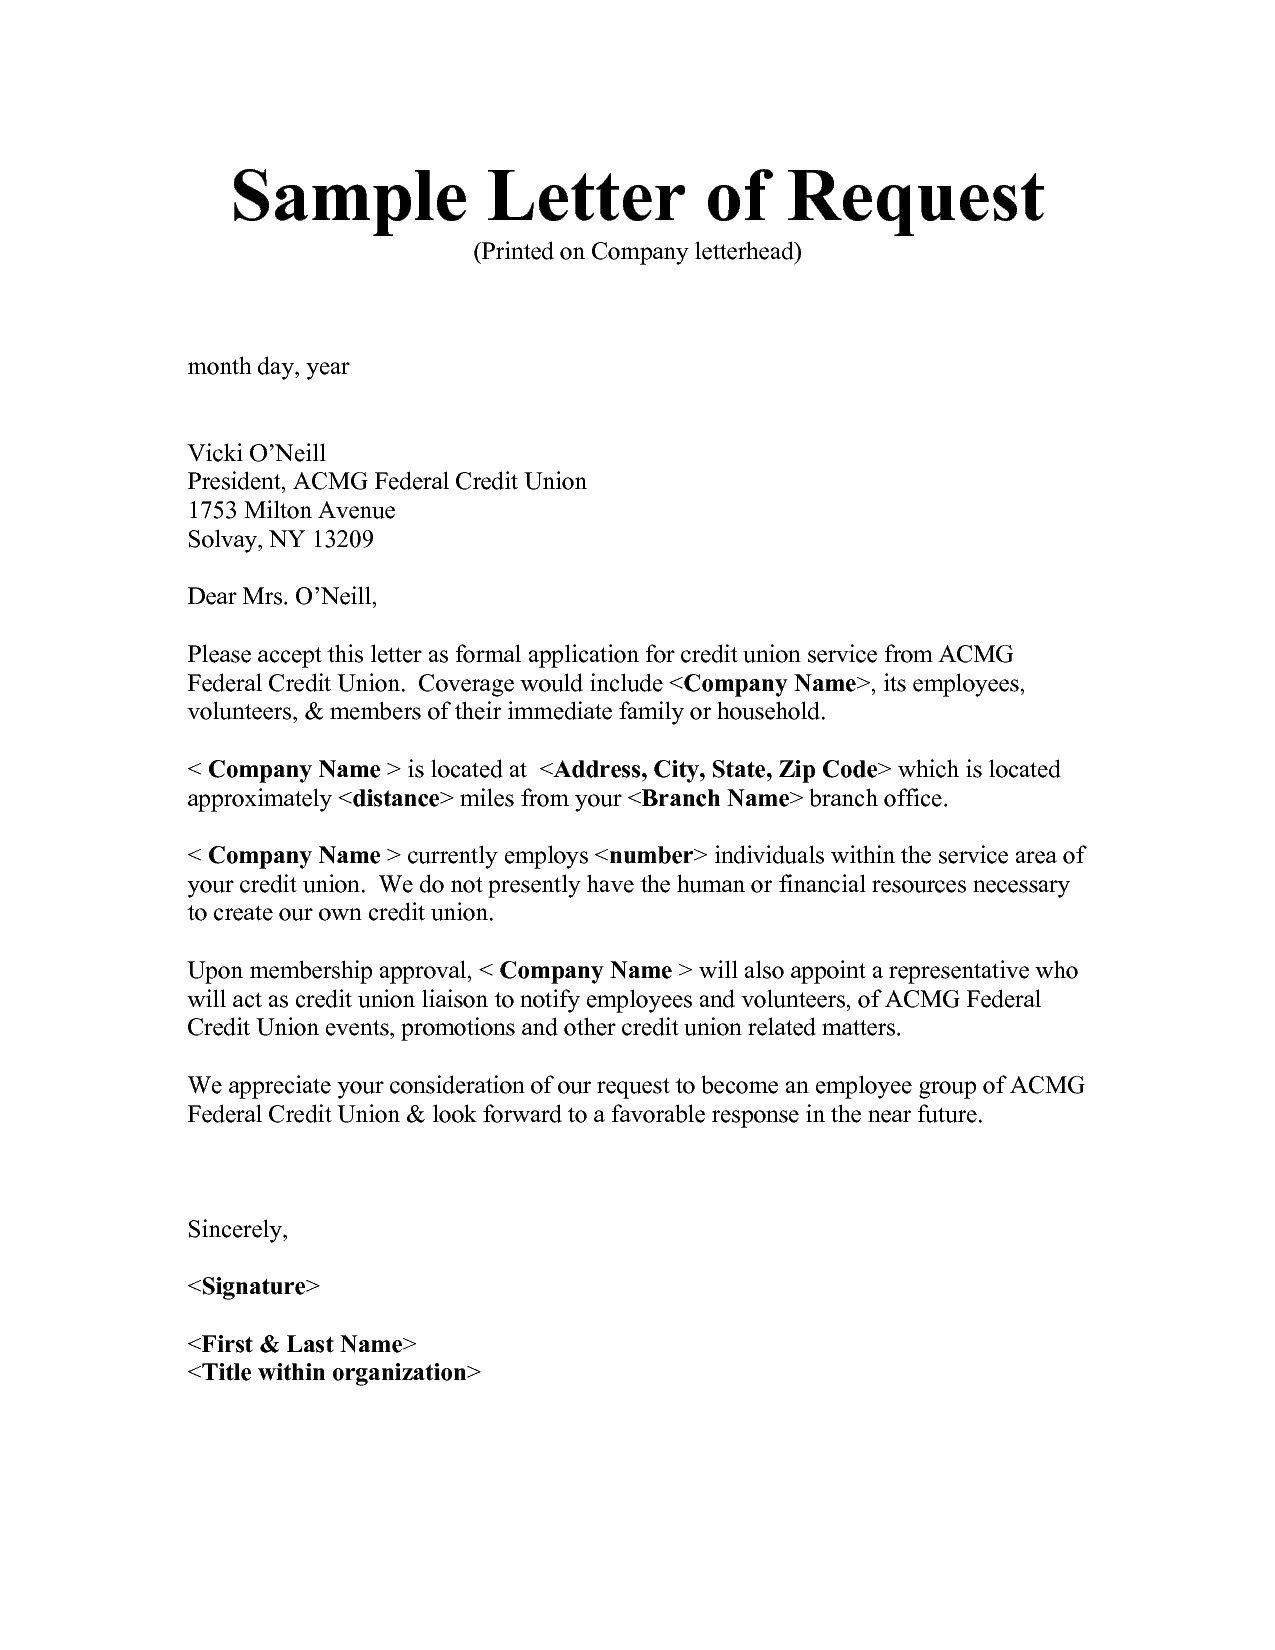 You Can See This Valid Letter format for Requesting form